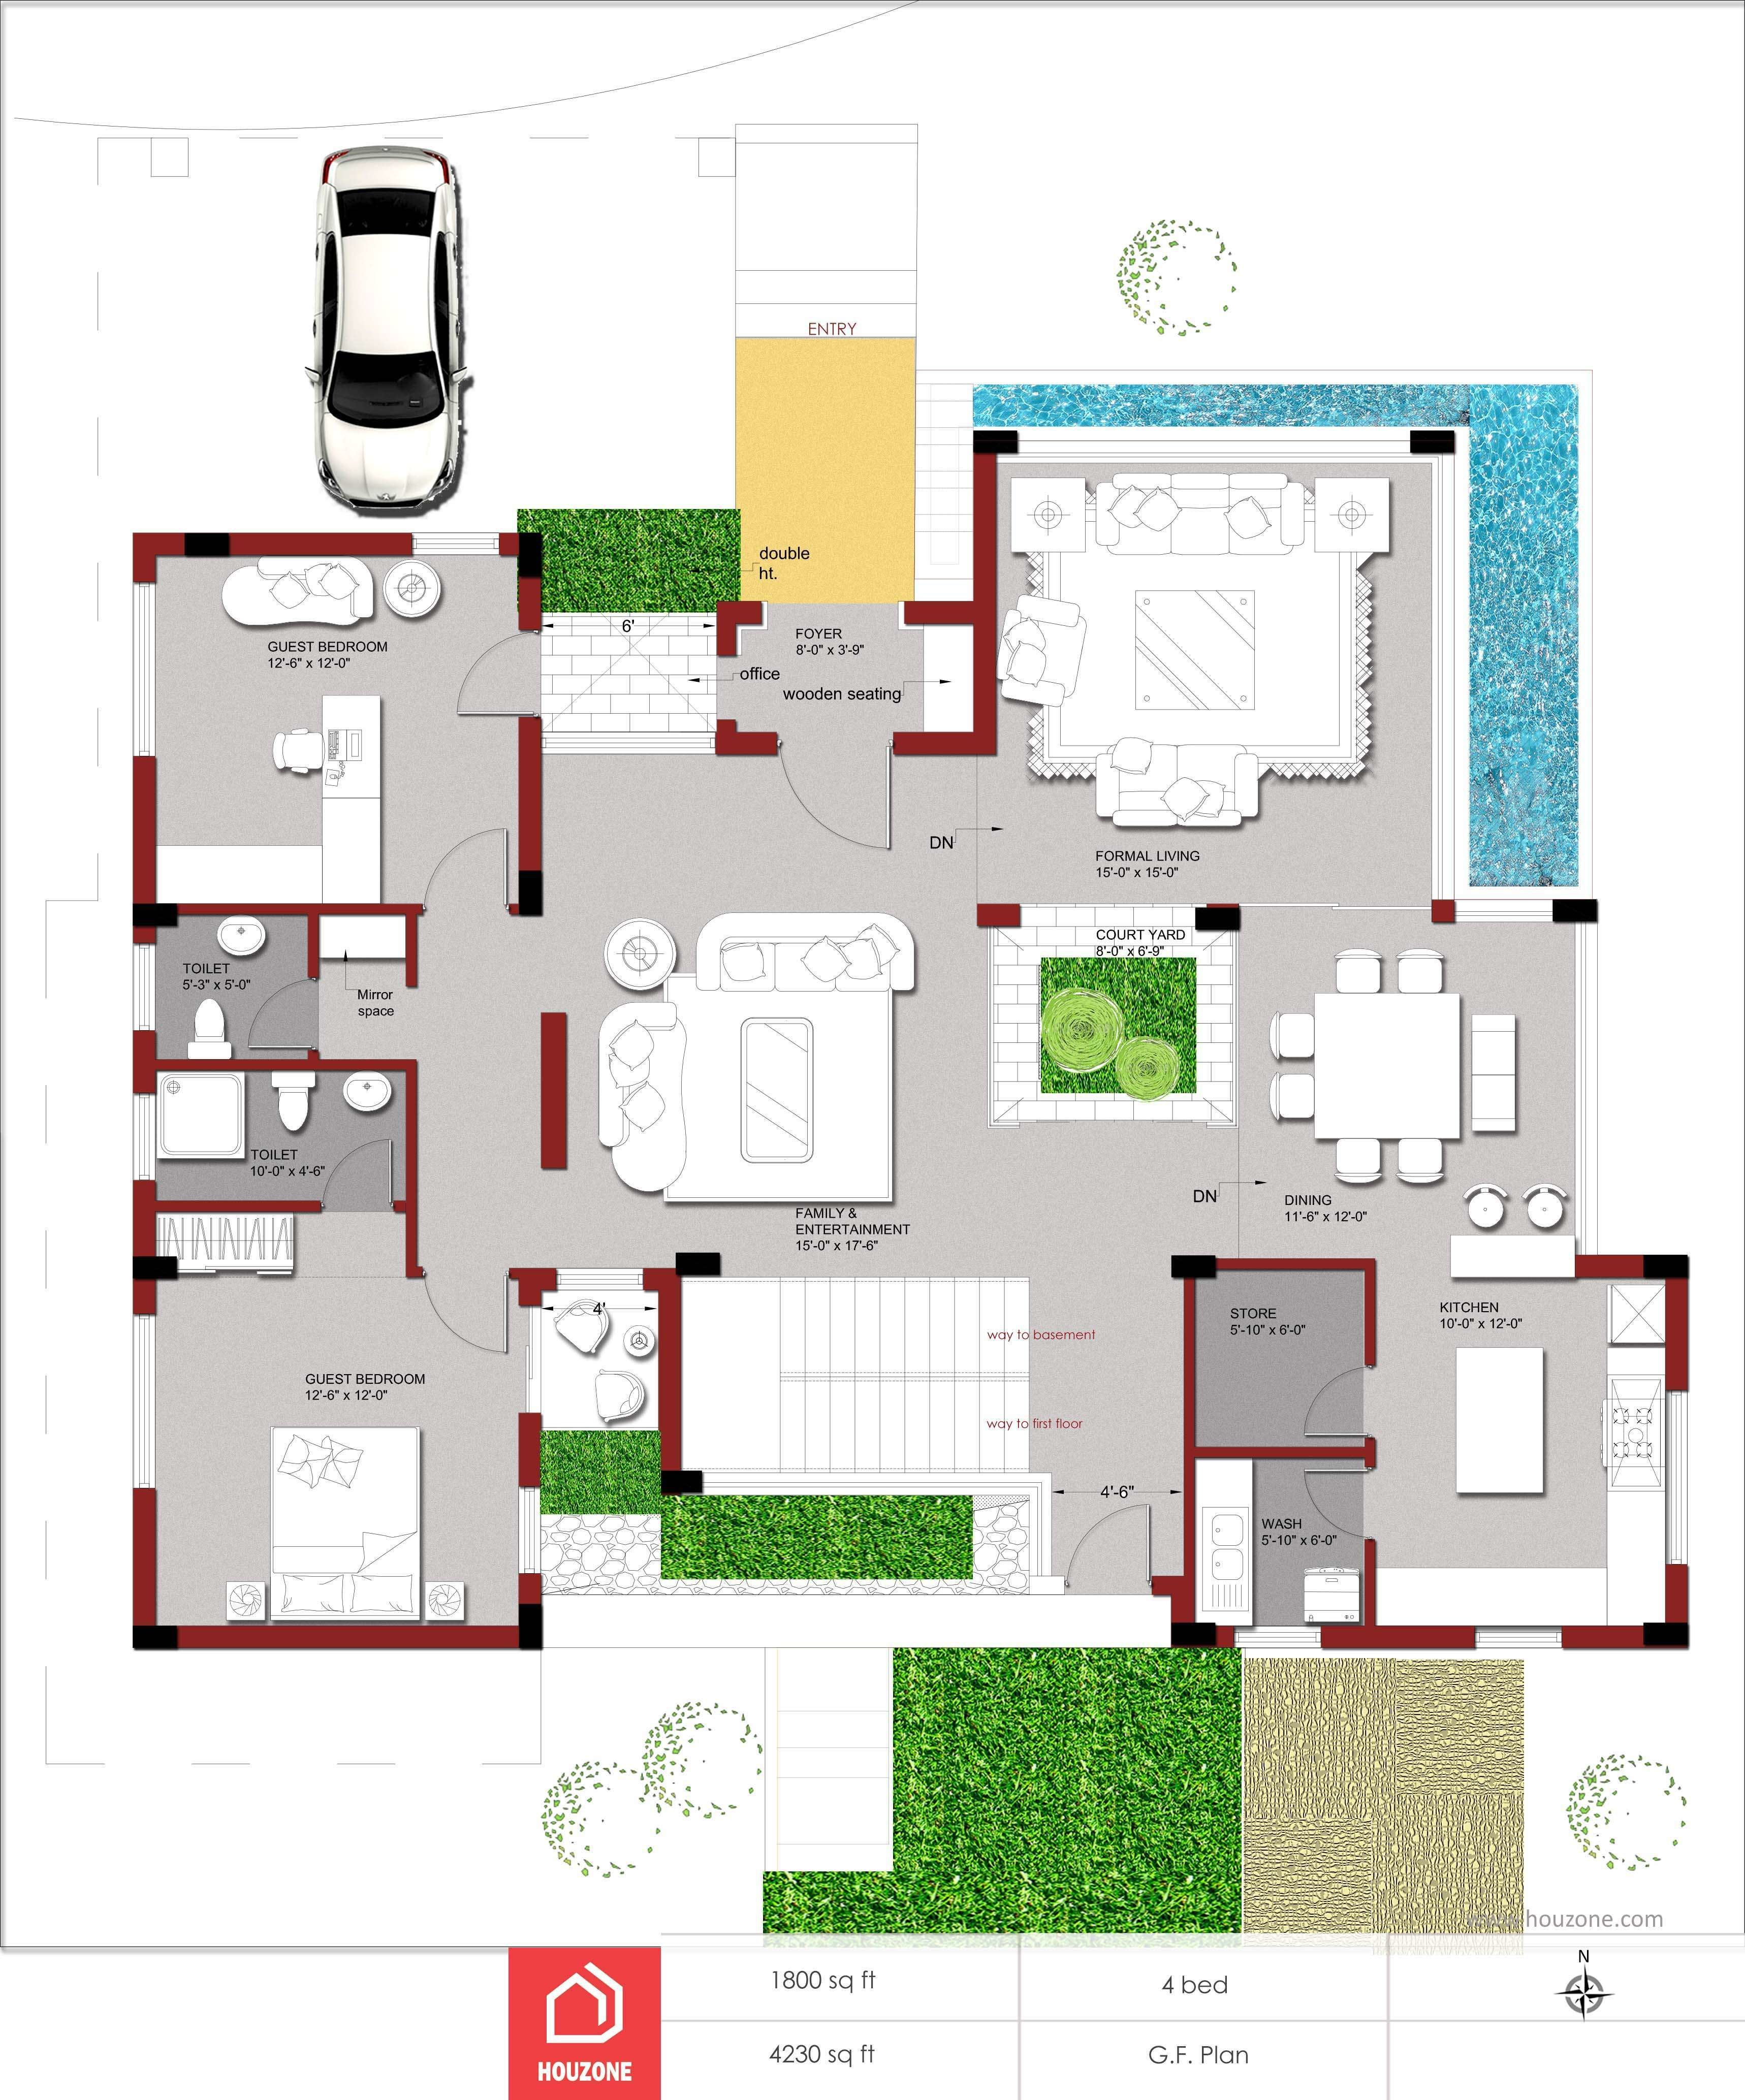 Best 30 Images Of Draw House Plan Online For House Plan With Pictures